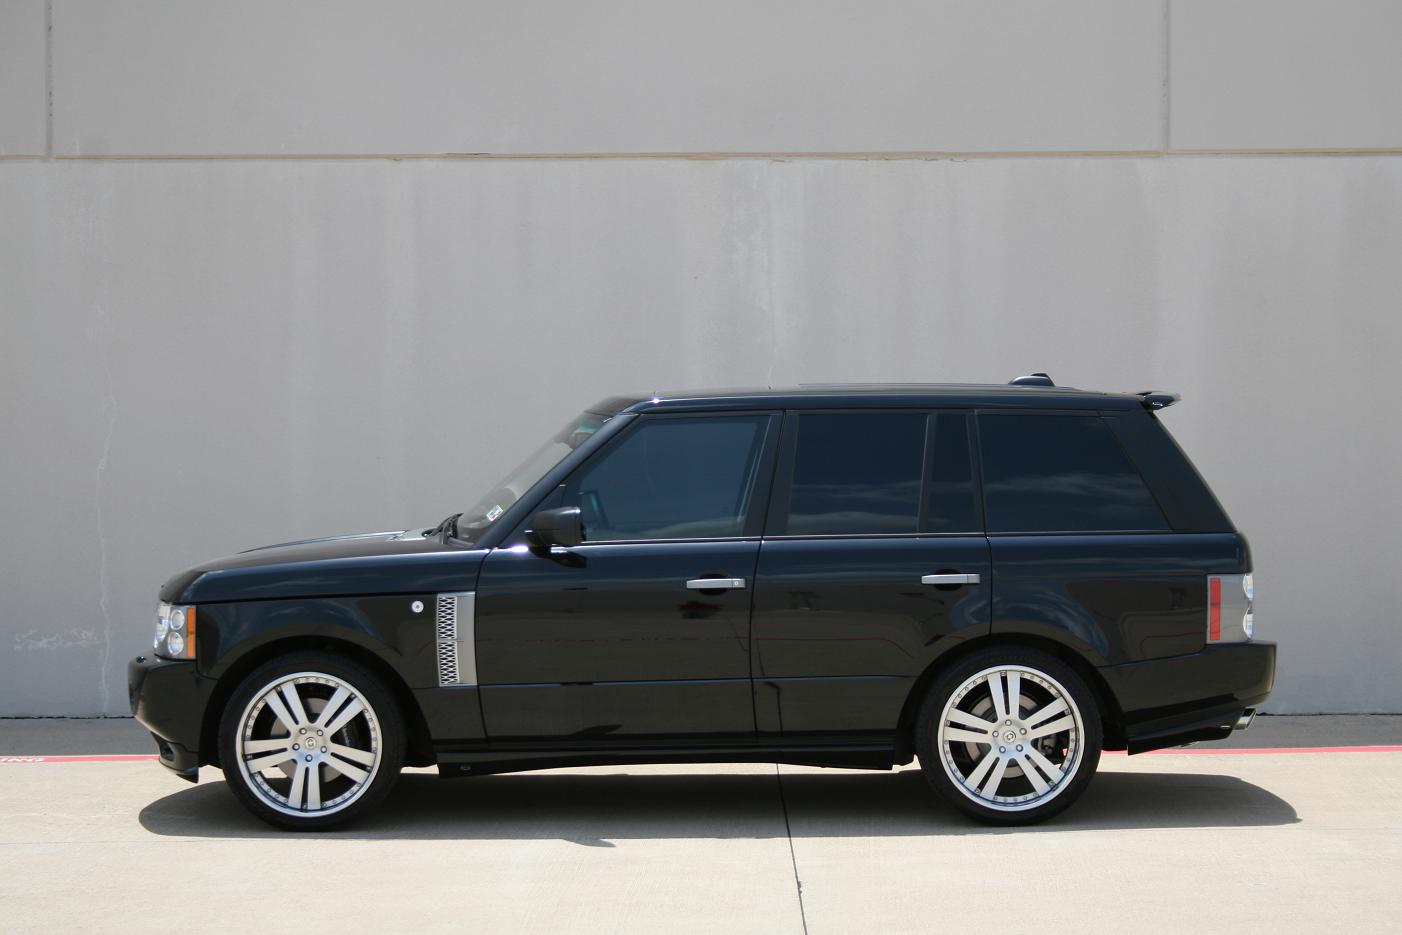 2008 range rover supercharged with 22 hre 947r and overfinch kit 6speedonline porsche forum. Black Bedroom Furniture Sets. Home Design Ideas